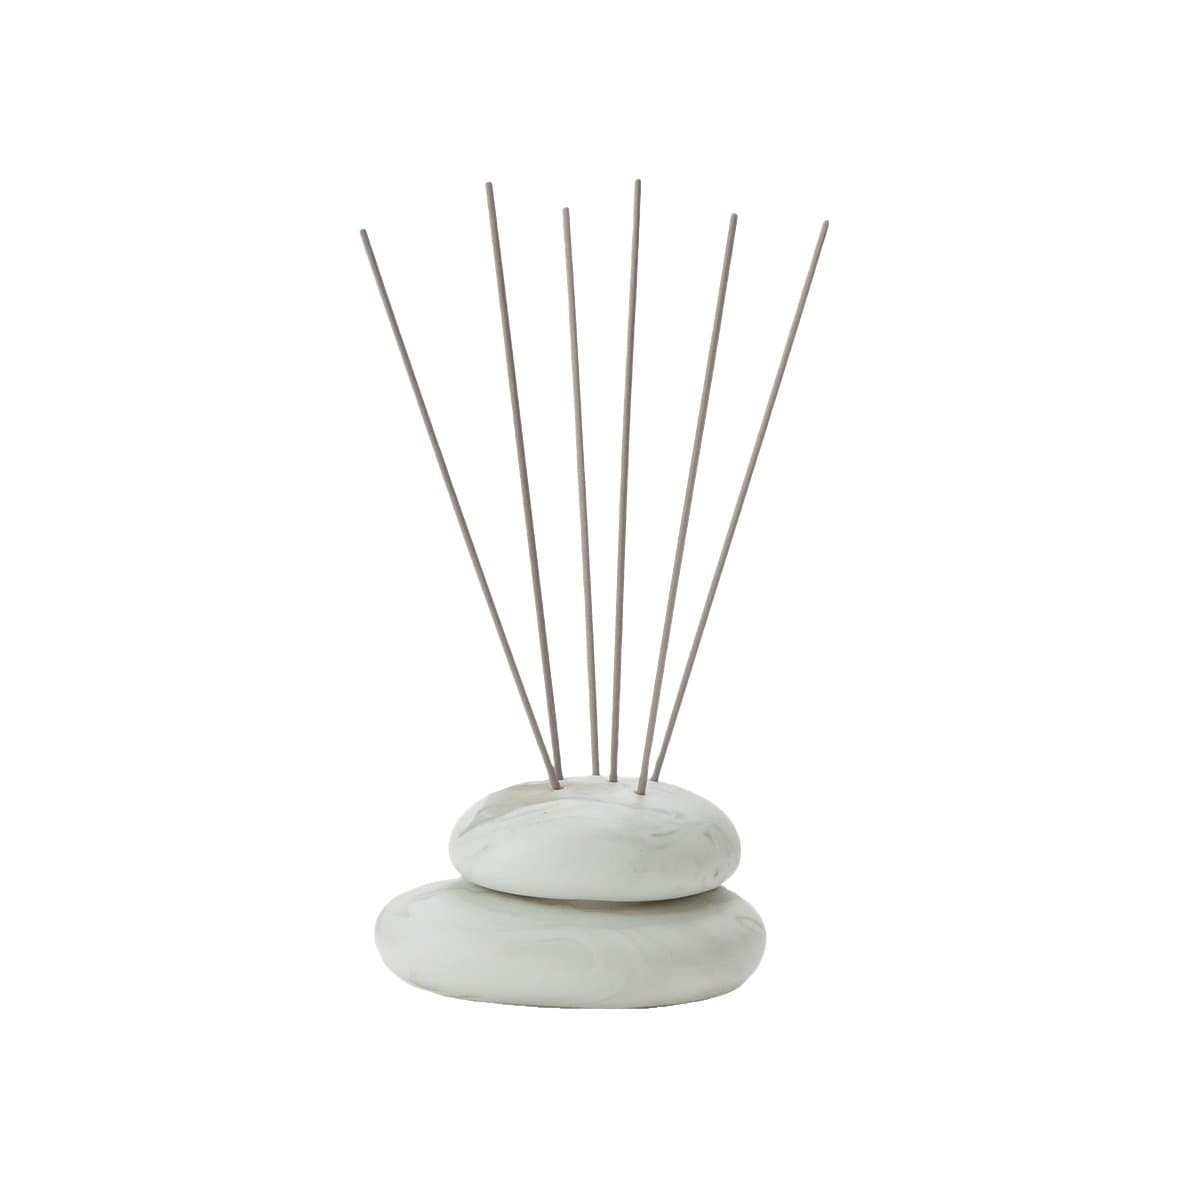 Kitchibe Candles, Diffusers + Incense Tumi Fragrance Diffuser